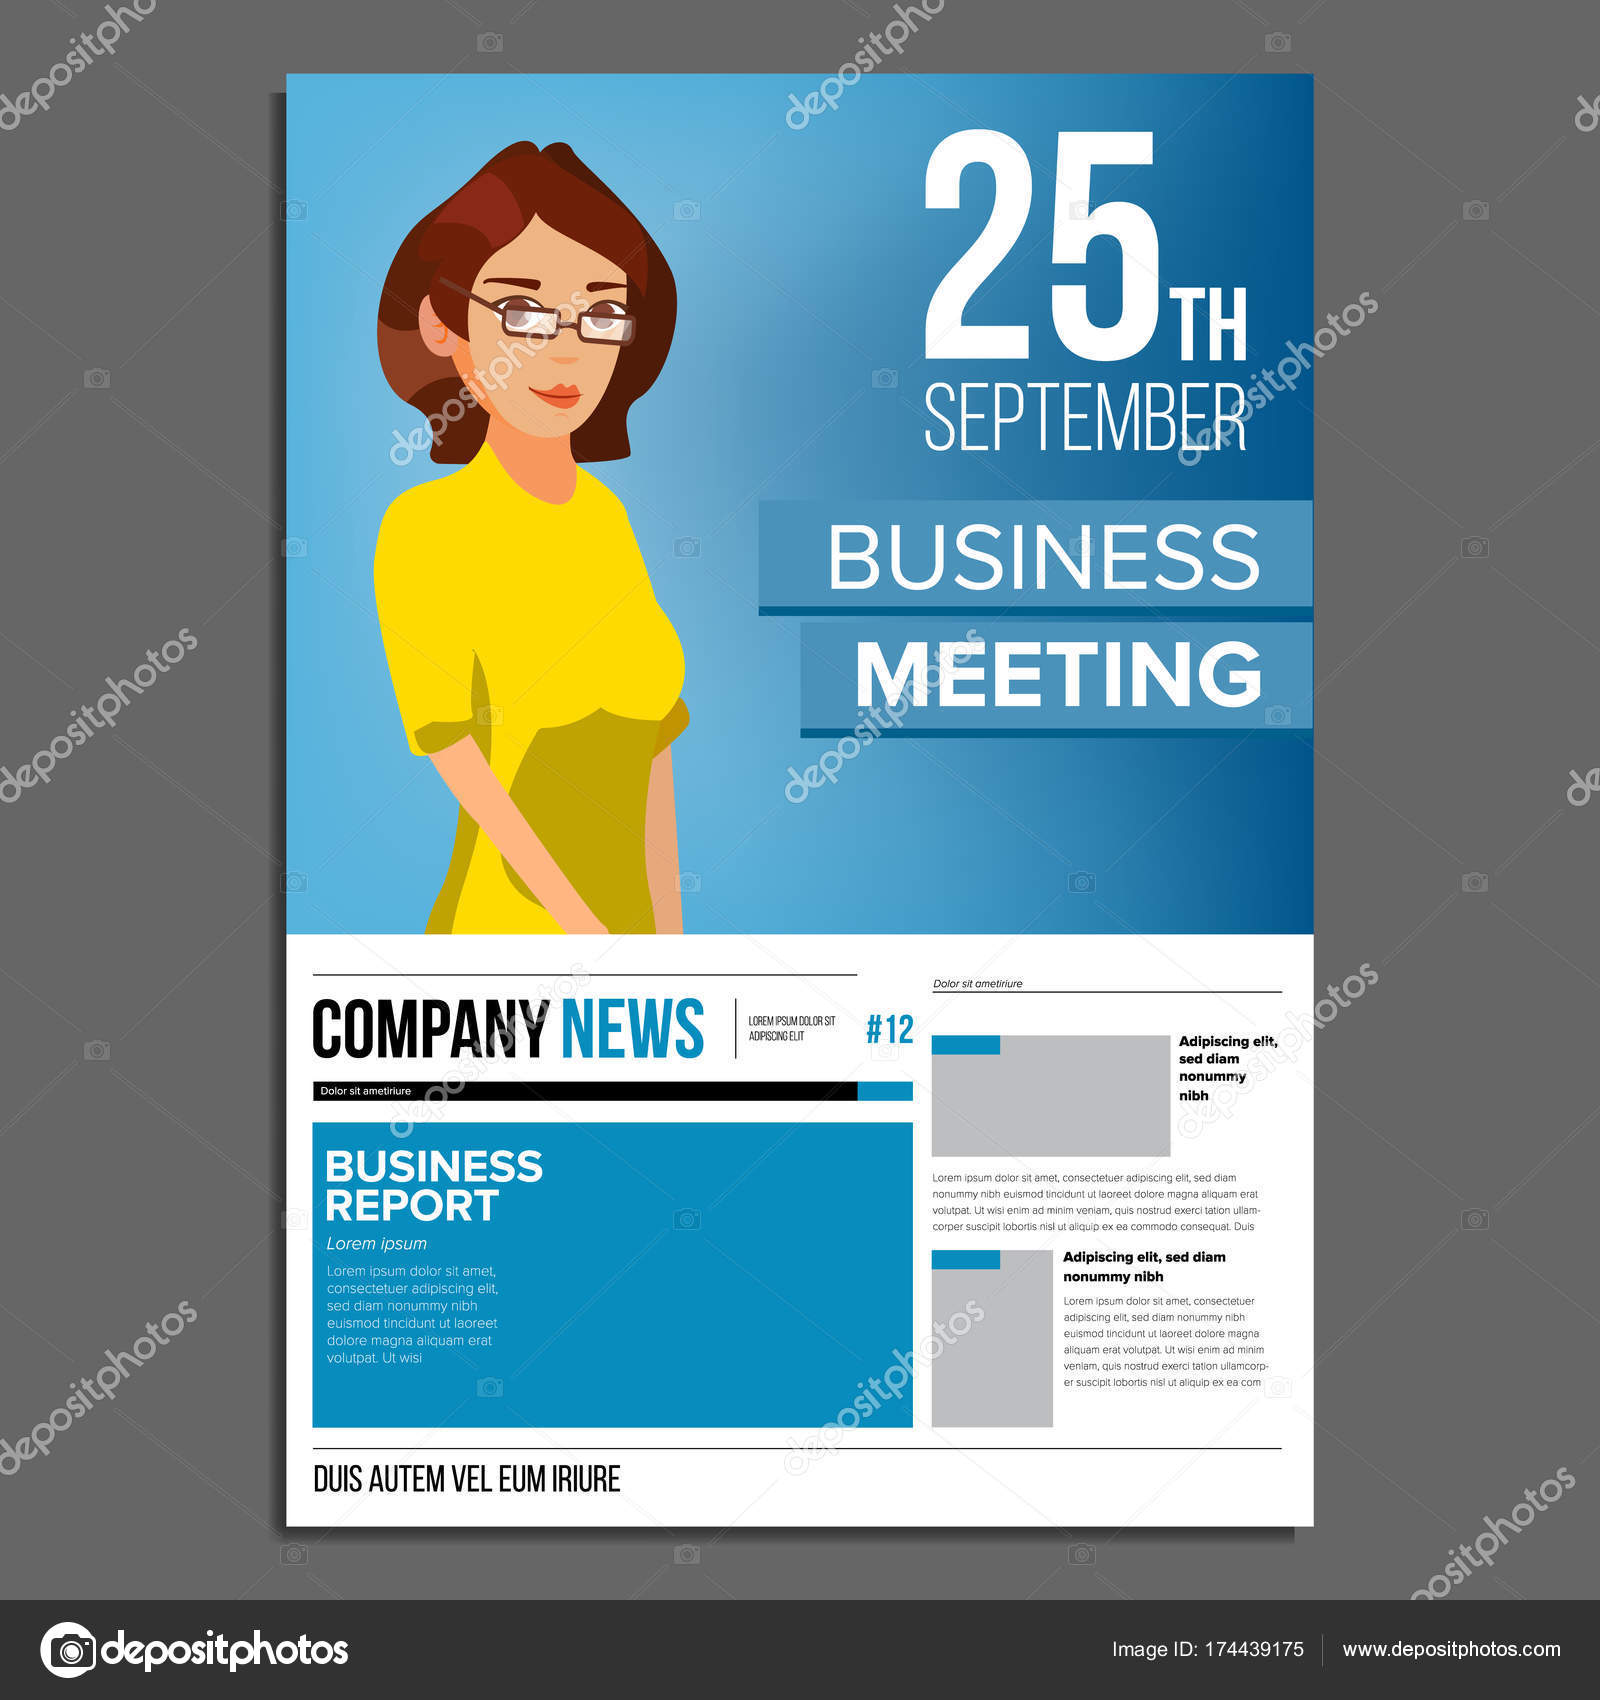 Business Meeting Poster Vektor. Business-Frau. Einladung und Datum ...